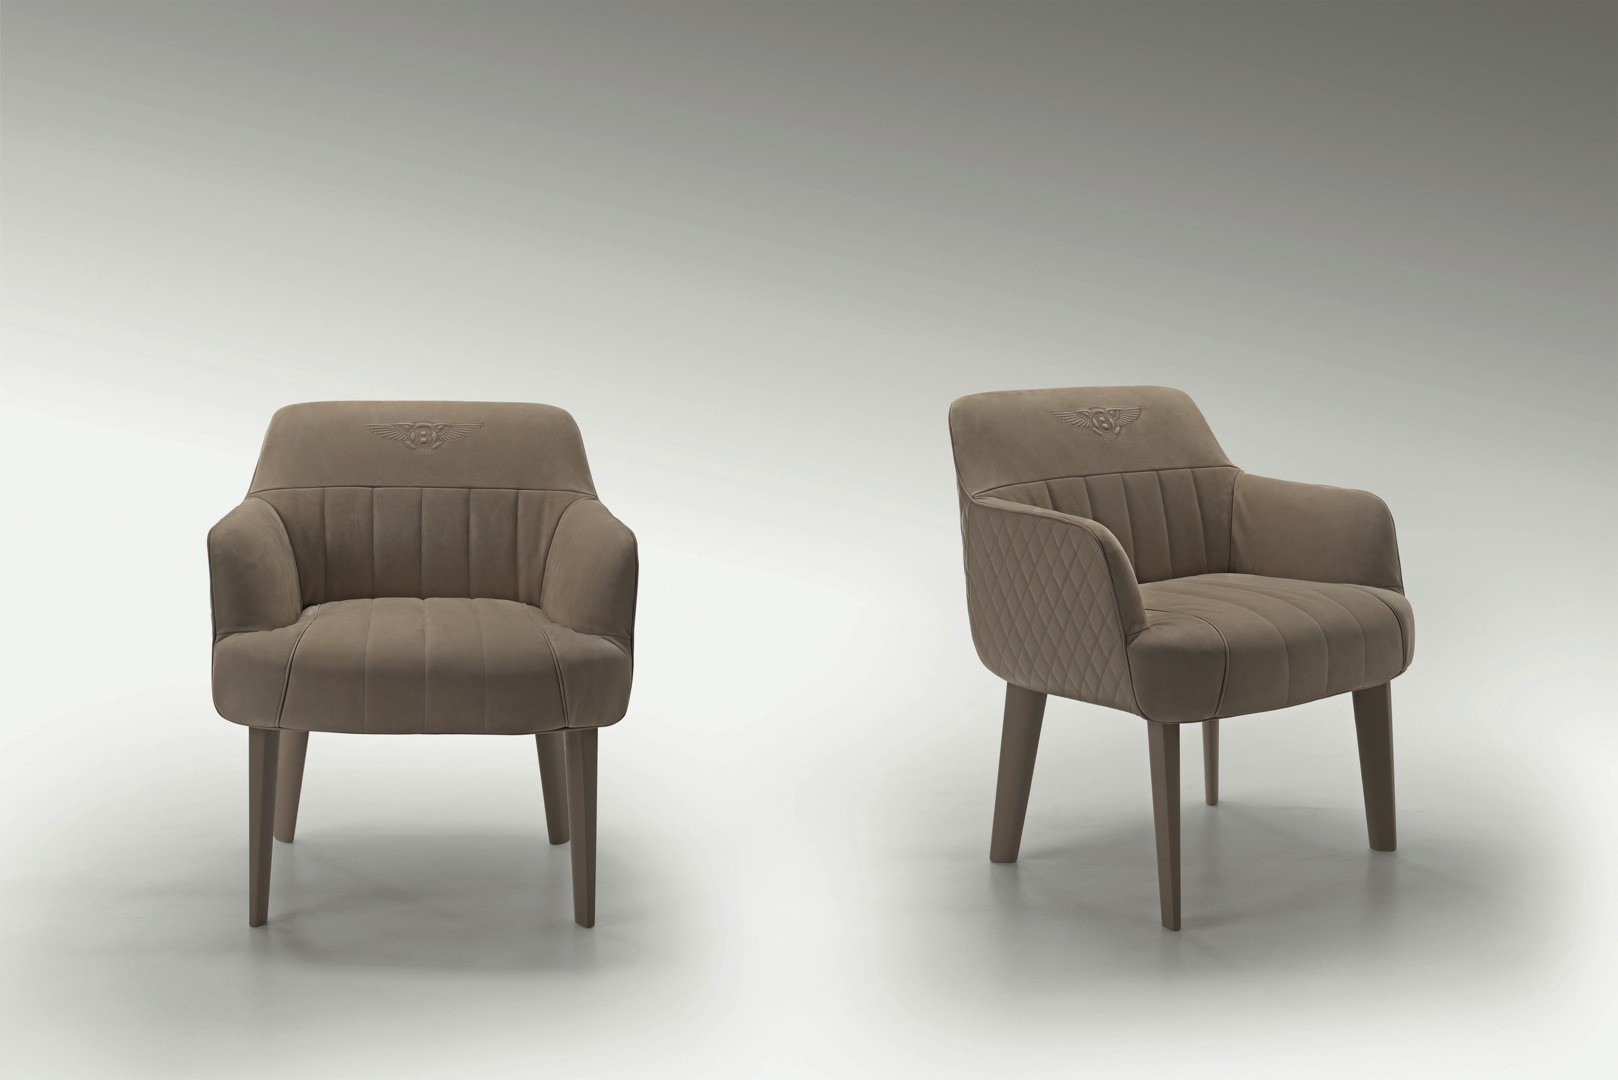 Bentley unveils new furniture and accessories collection for Furniture news